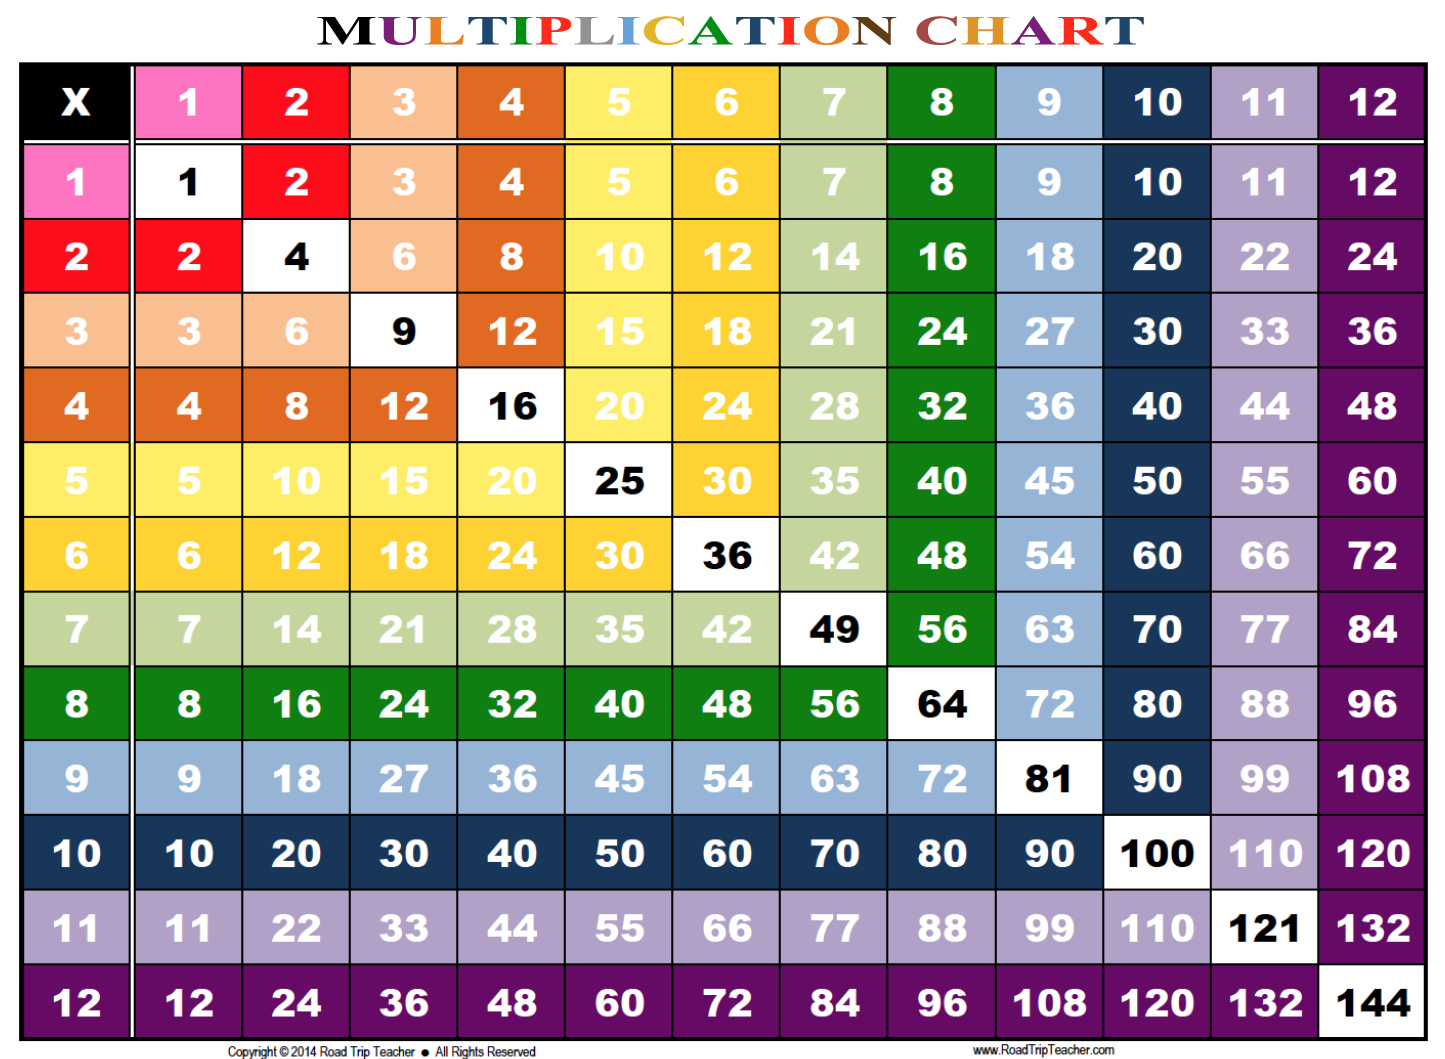 Pin Blank Multiplication Table 1 12 On Pinterest in Printable Blank Multiplication Table 0-12